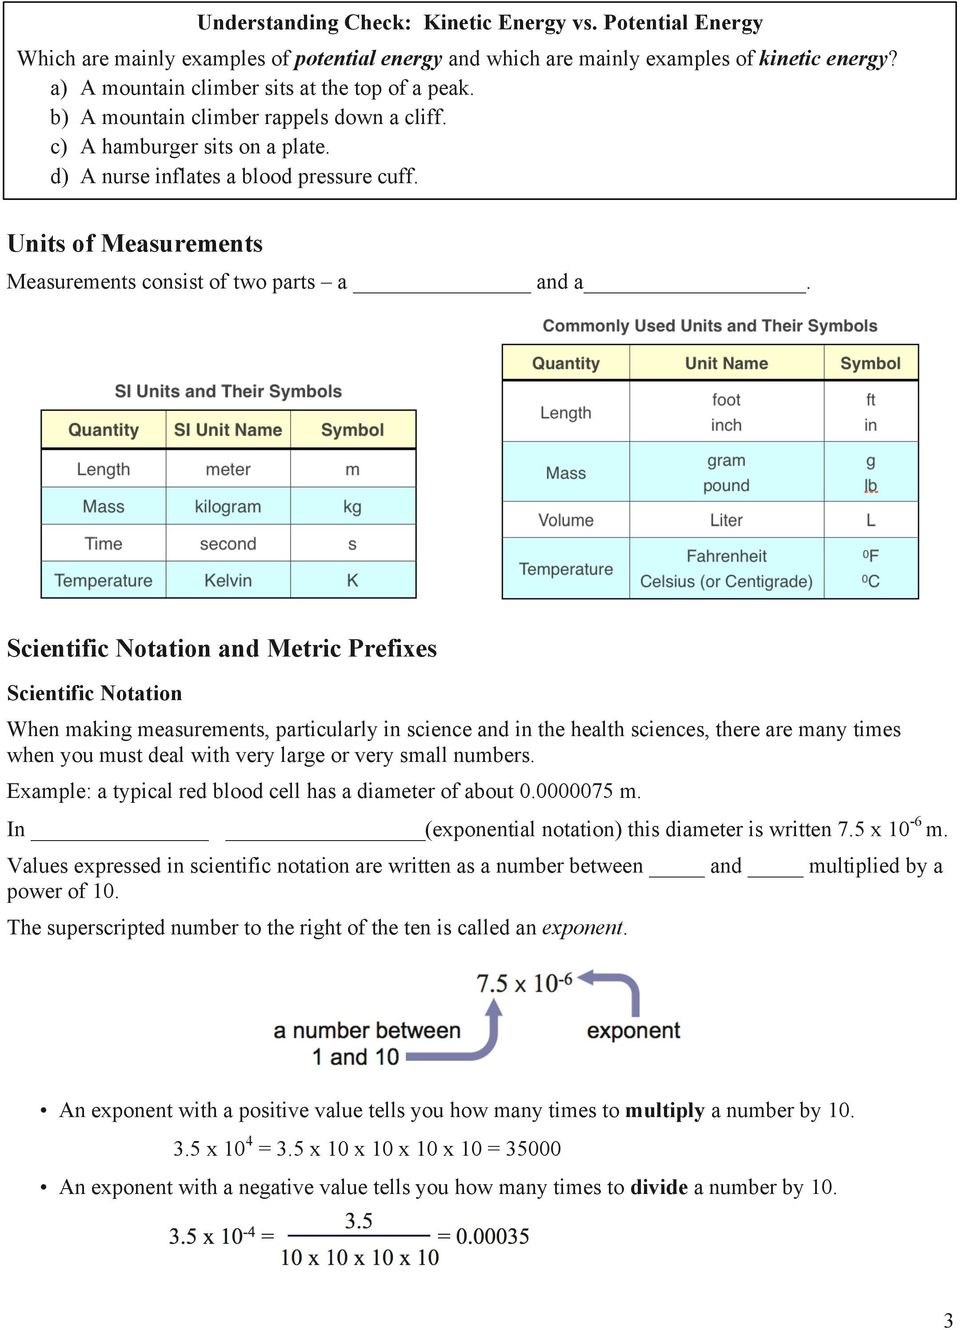 Scientific Notation and Metric Prefixes Scientific Notation When making measurements, particularly in science and in the health sciences, there are many times when you must deal with very large or